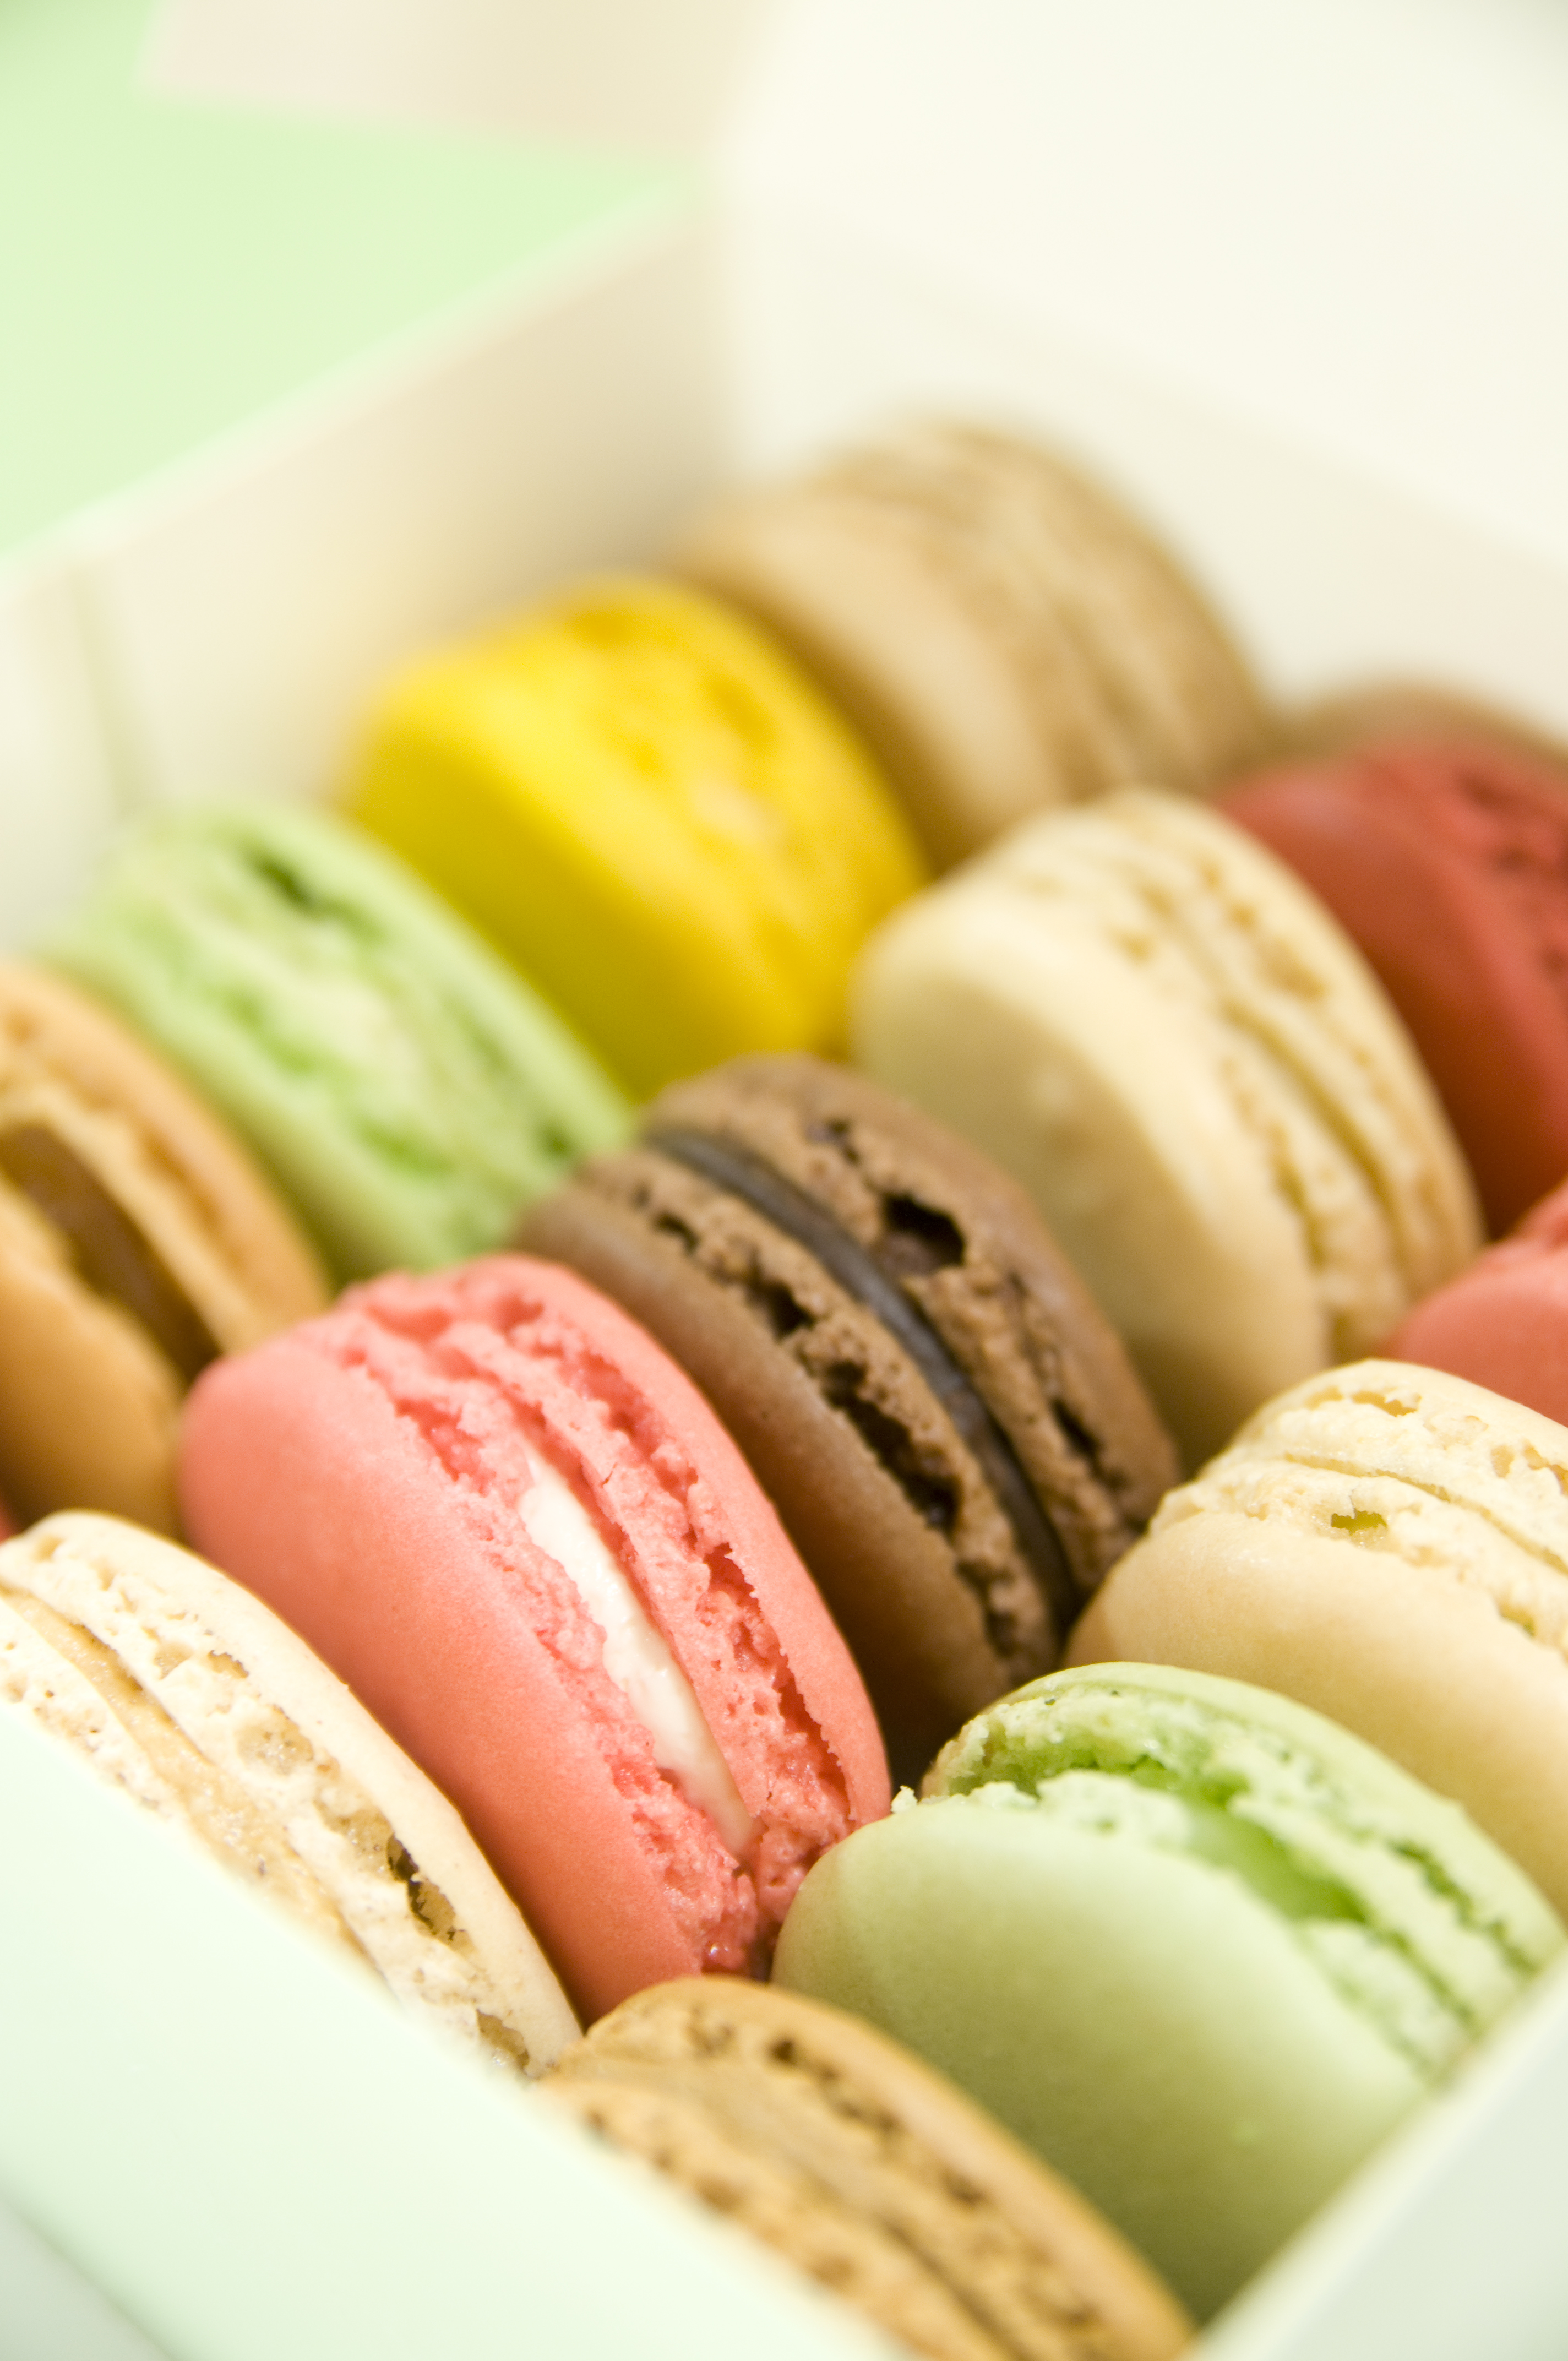 Macarons - Laduree - Paris with kids - Travelling with children - My French Life